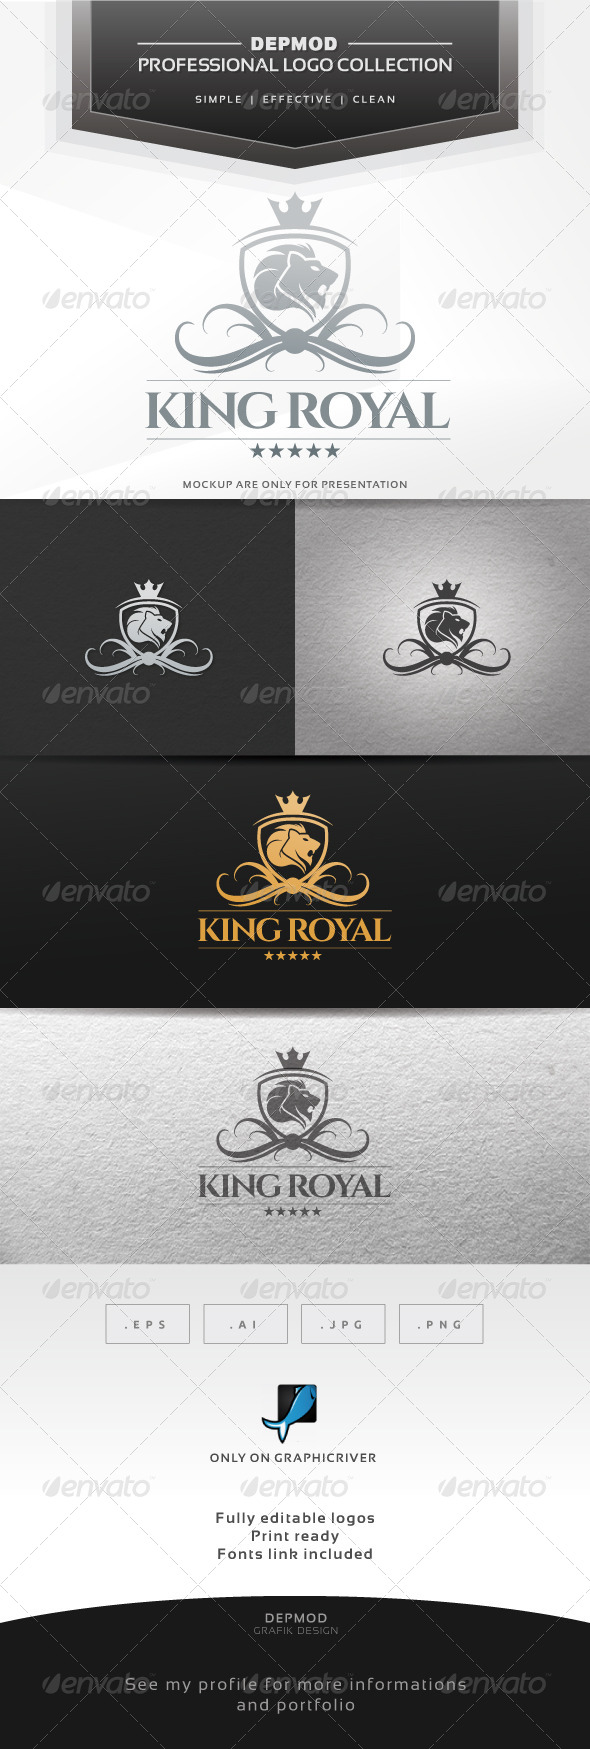 King Royal V.02 Logo